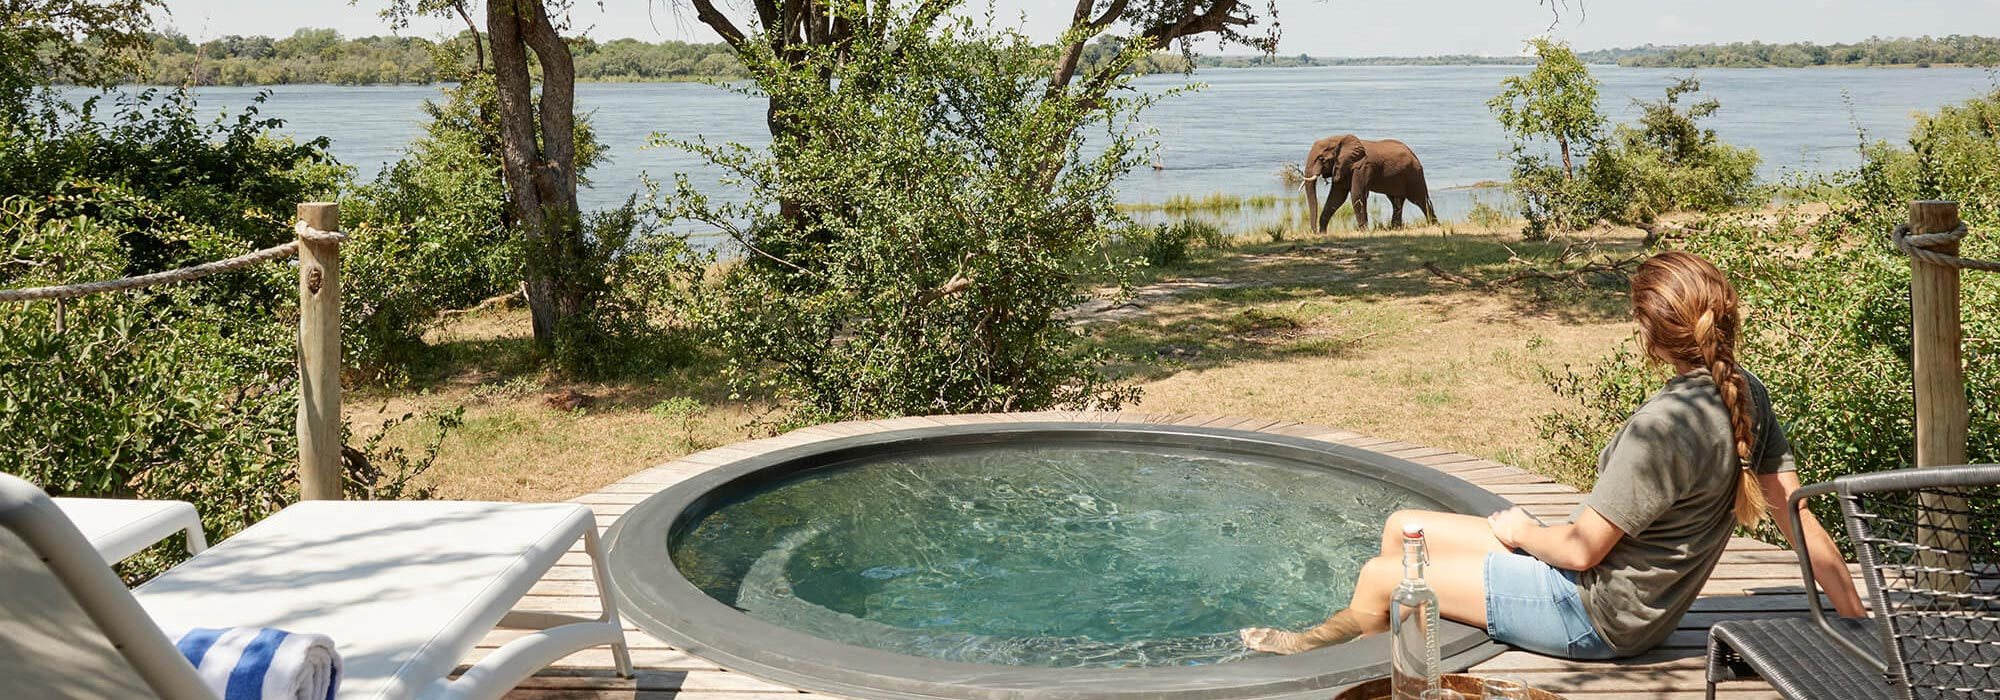 Victoria Falls River Lodge Plunge Pool